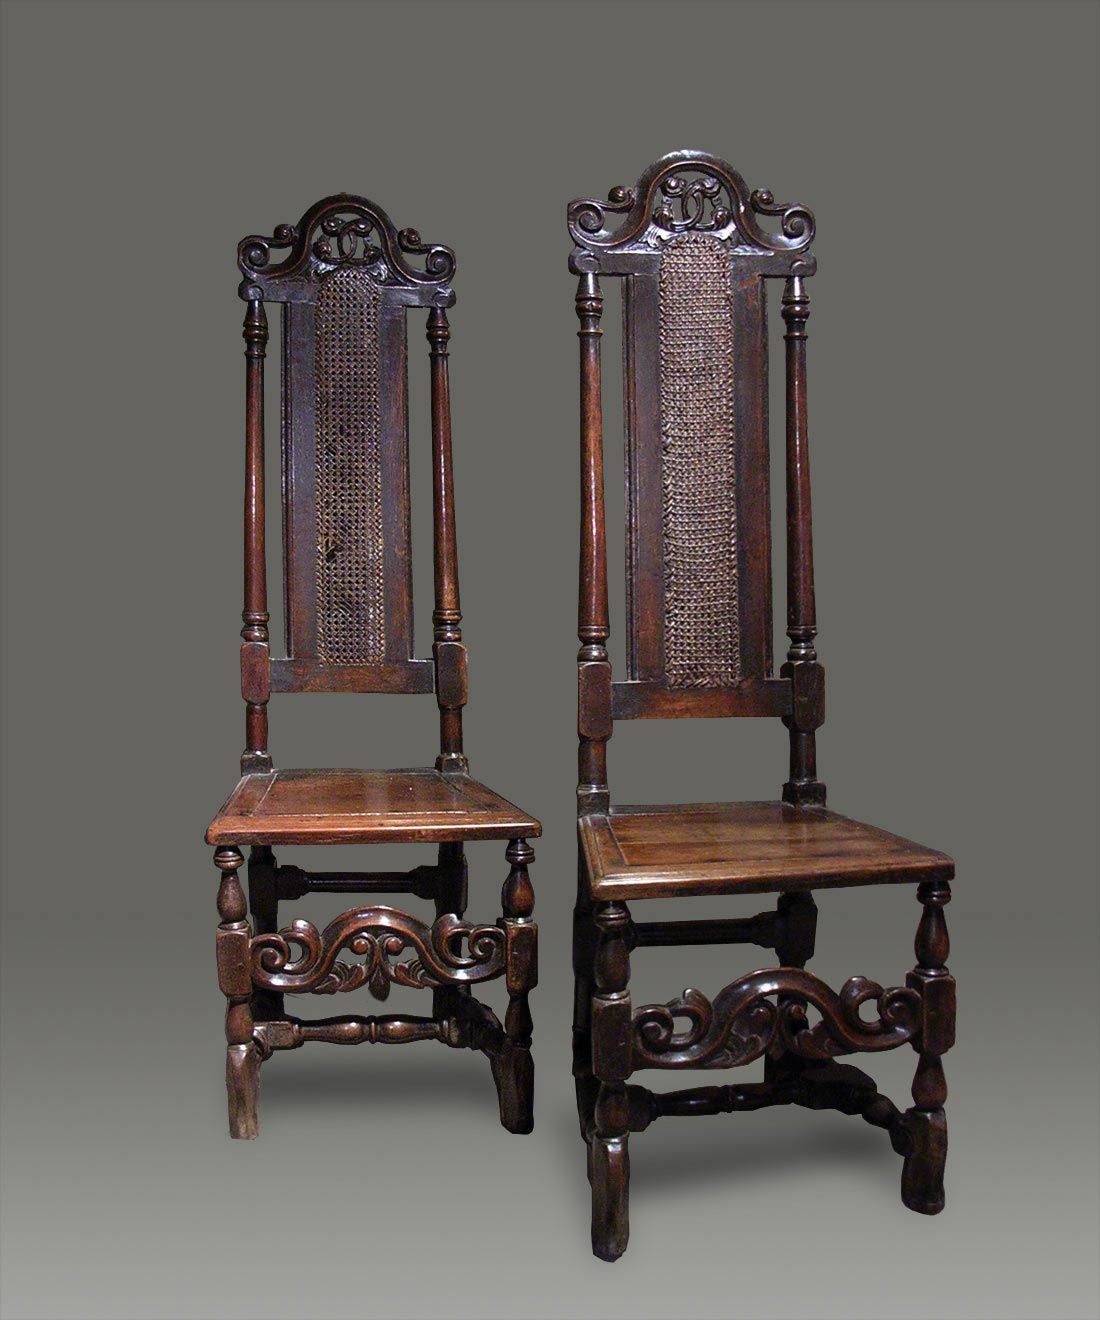 Antique Cane Chairs High Back Carved Crests - Antique Chair Types Place Pointer Over Main Image For Zoom Sit